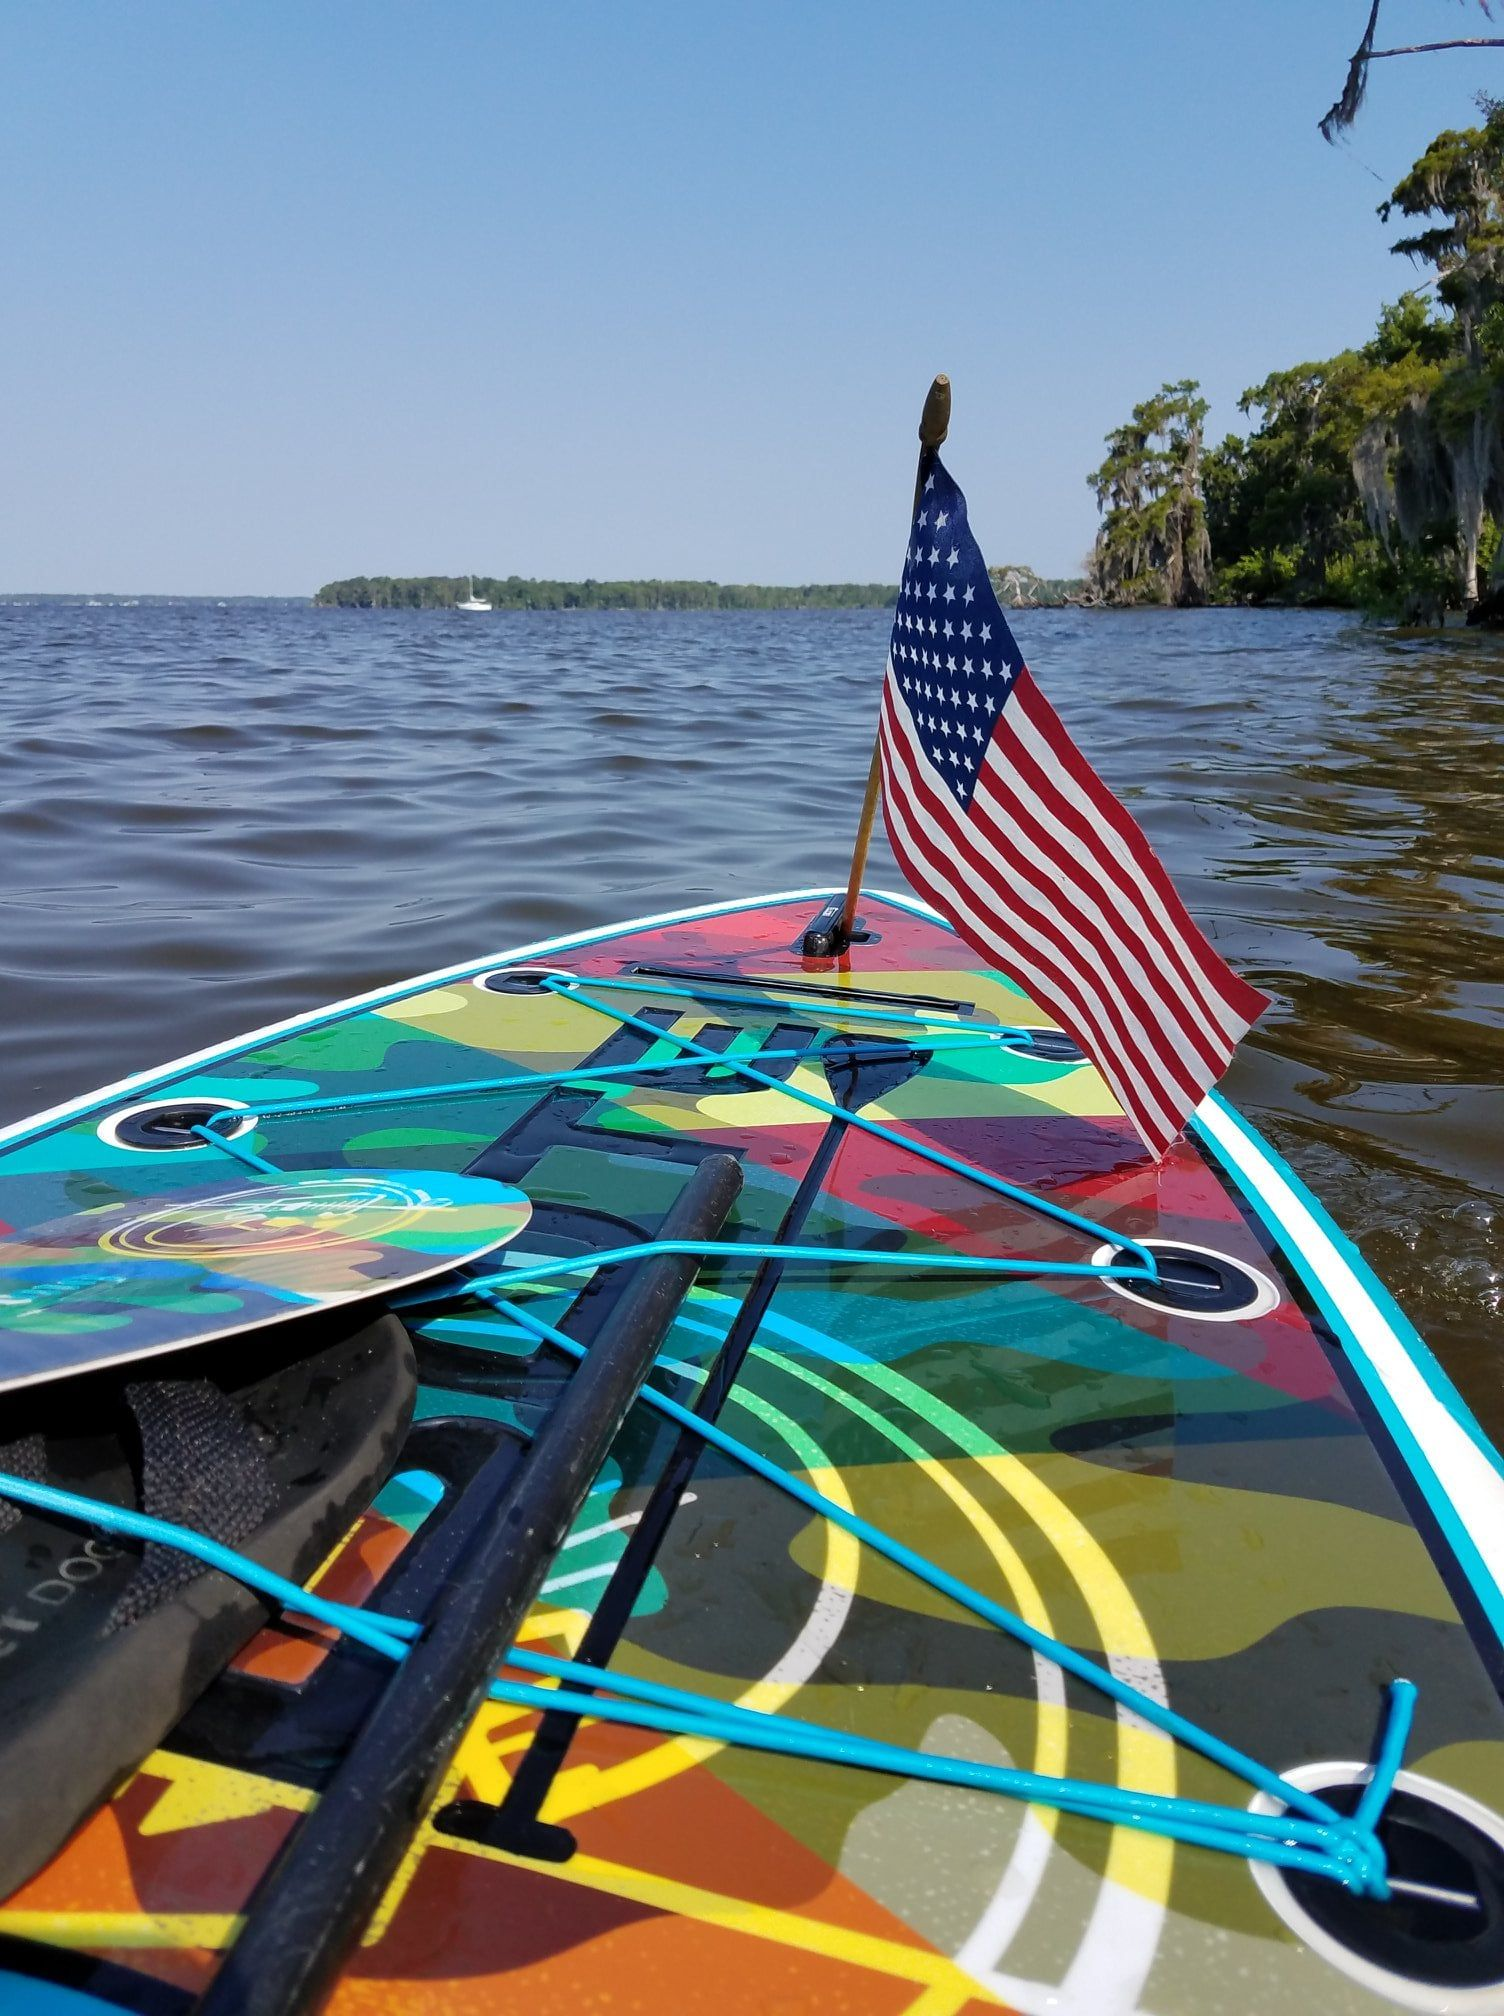 St johns river in 2020 historical sites florida travel